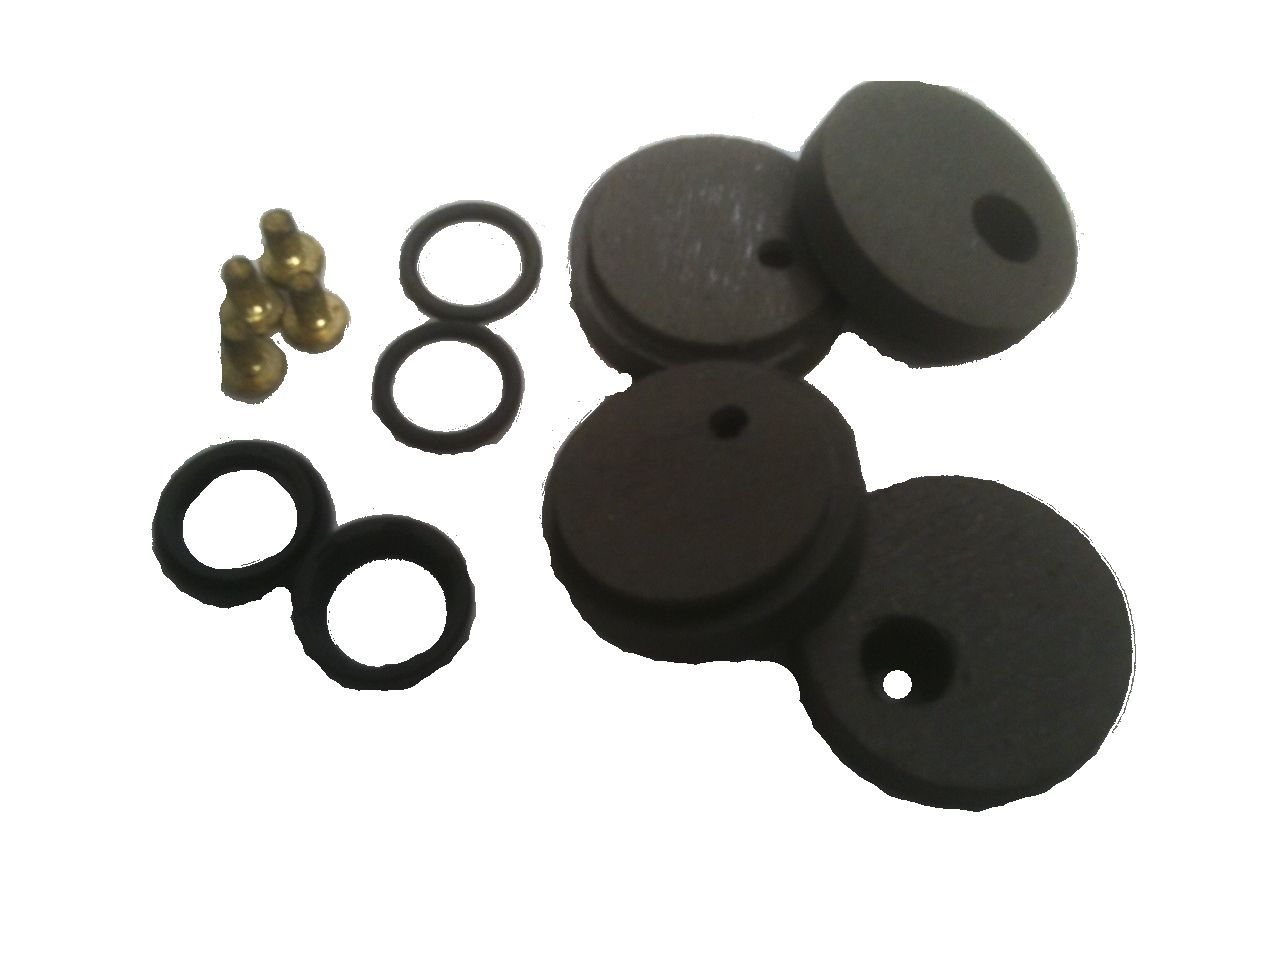 BK55-261 - Front Brake Caliper Repair Kit, Round Pads